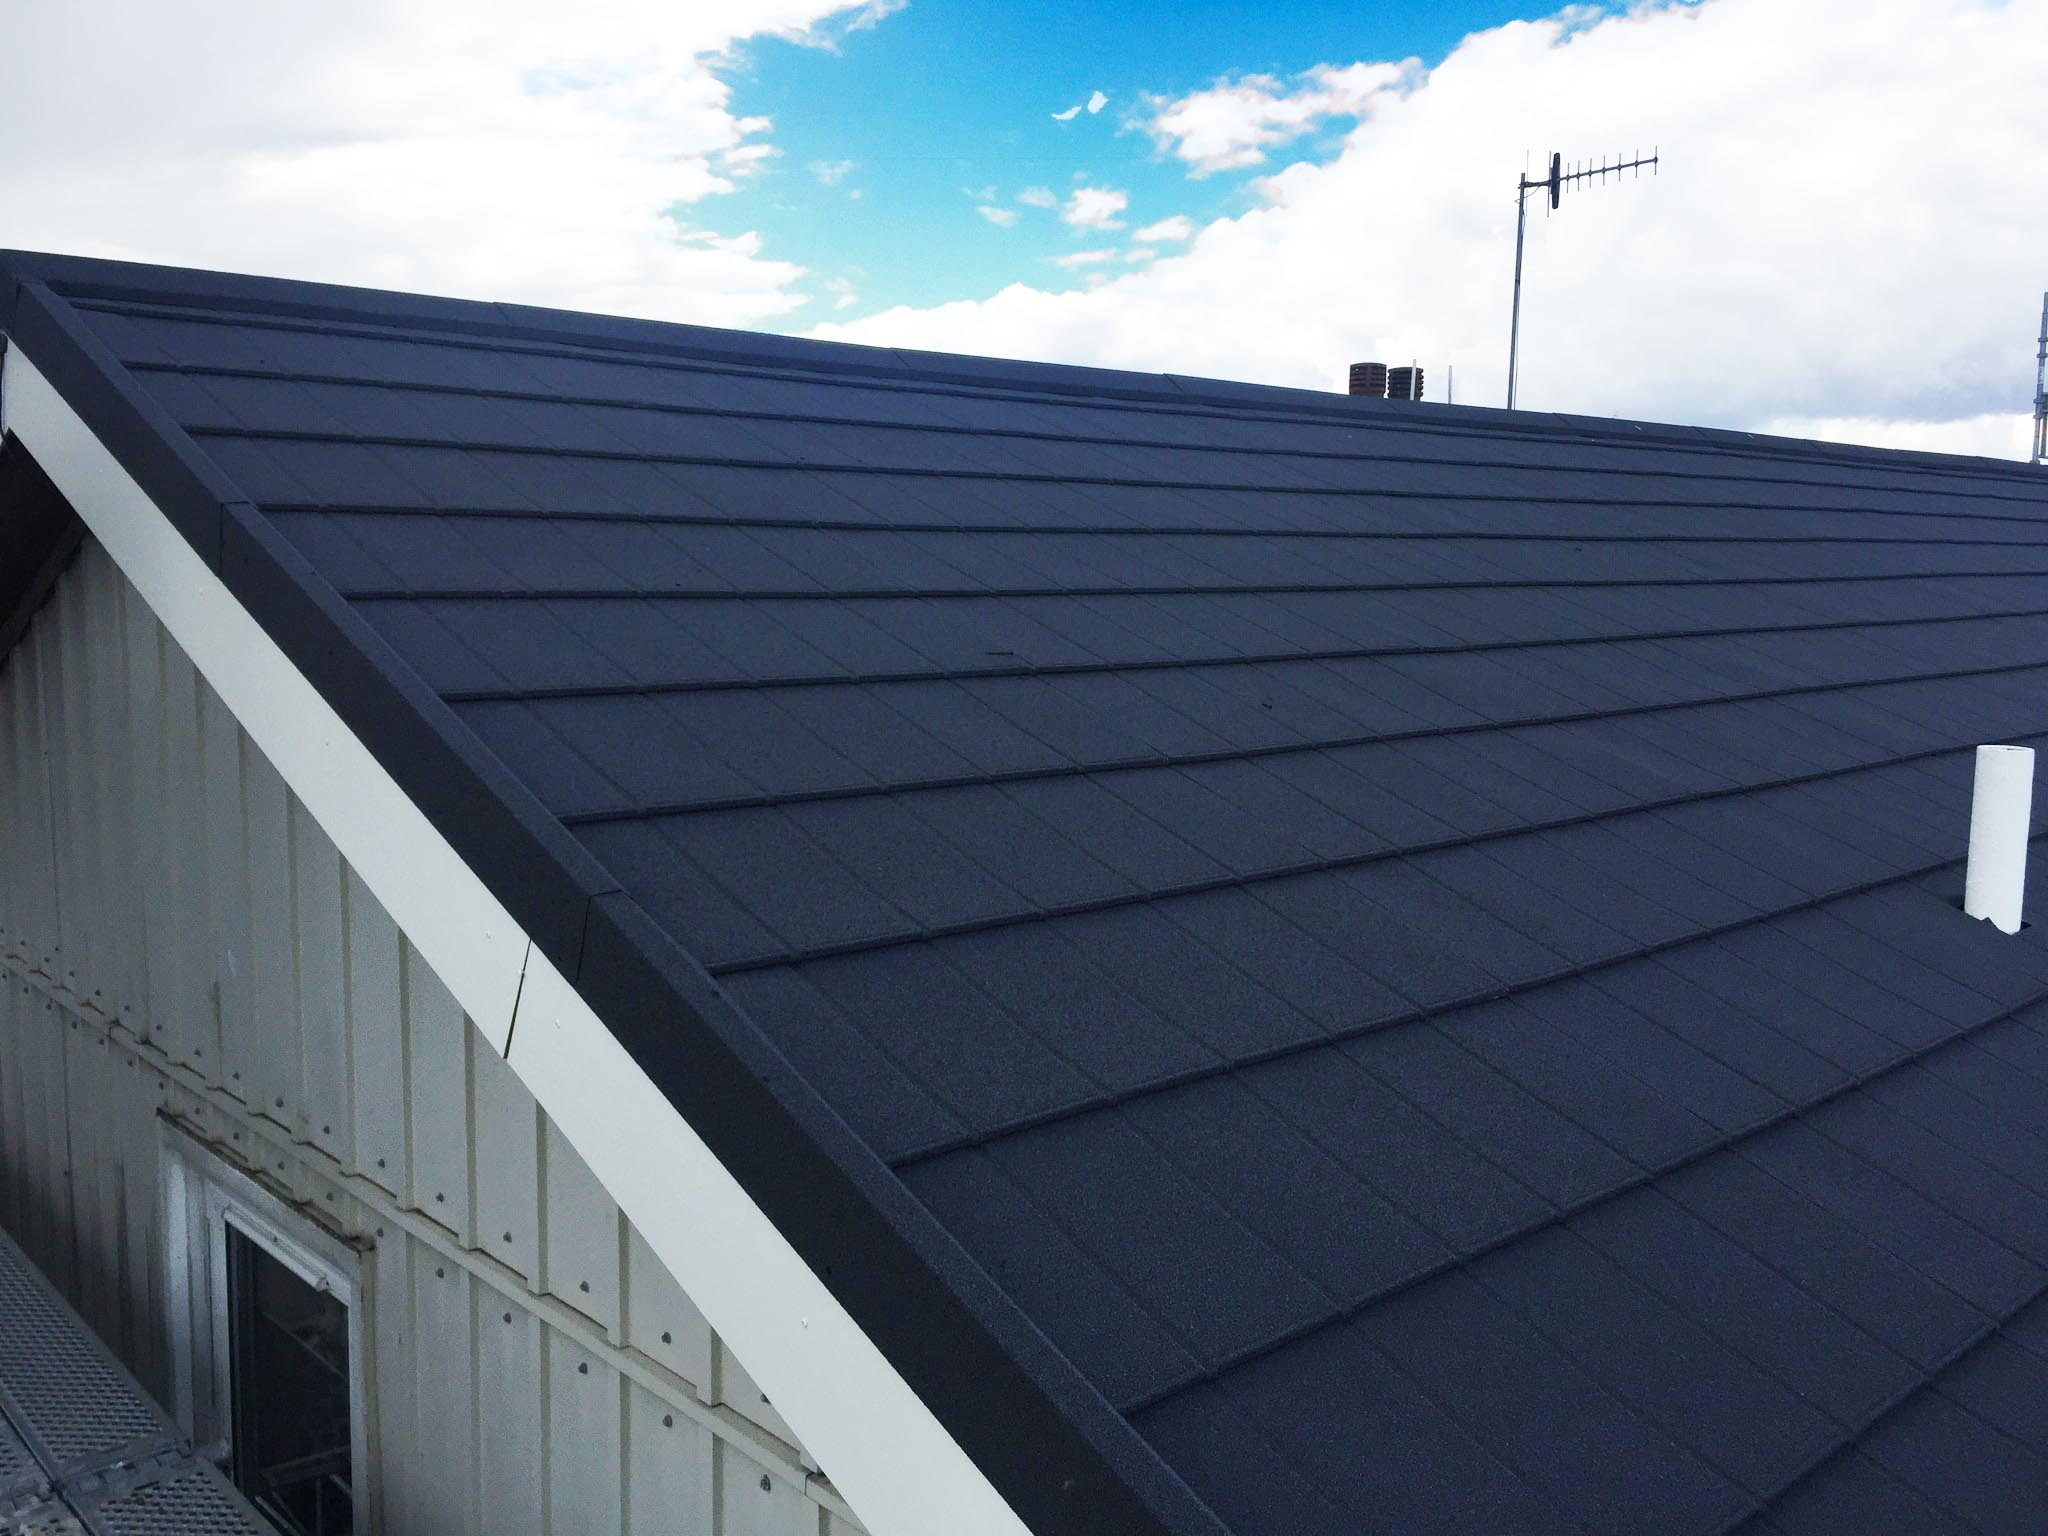 A roof with Metrotile iPanel in Charcoal as the roofing material